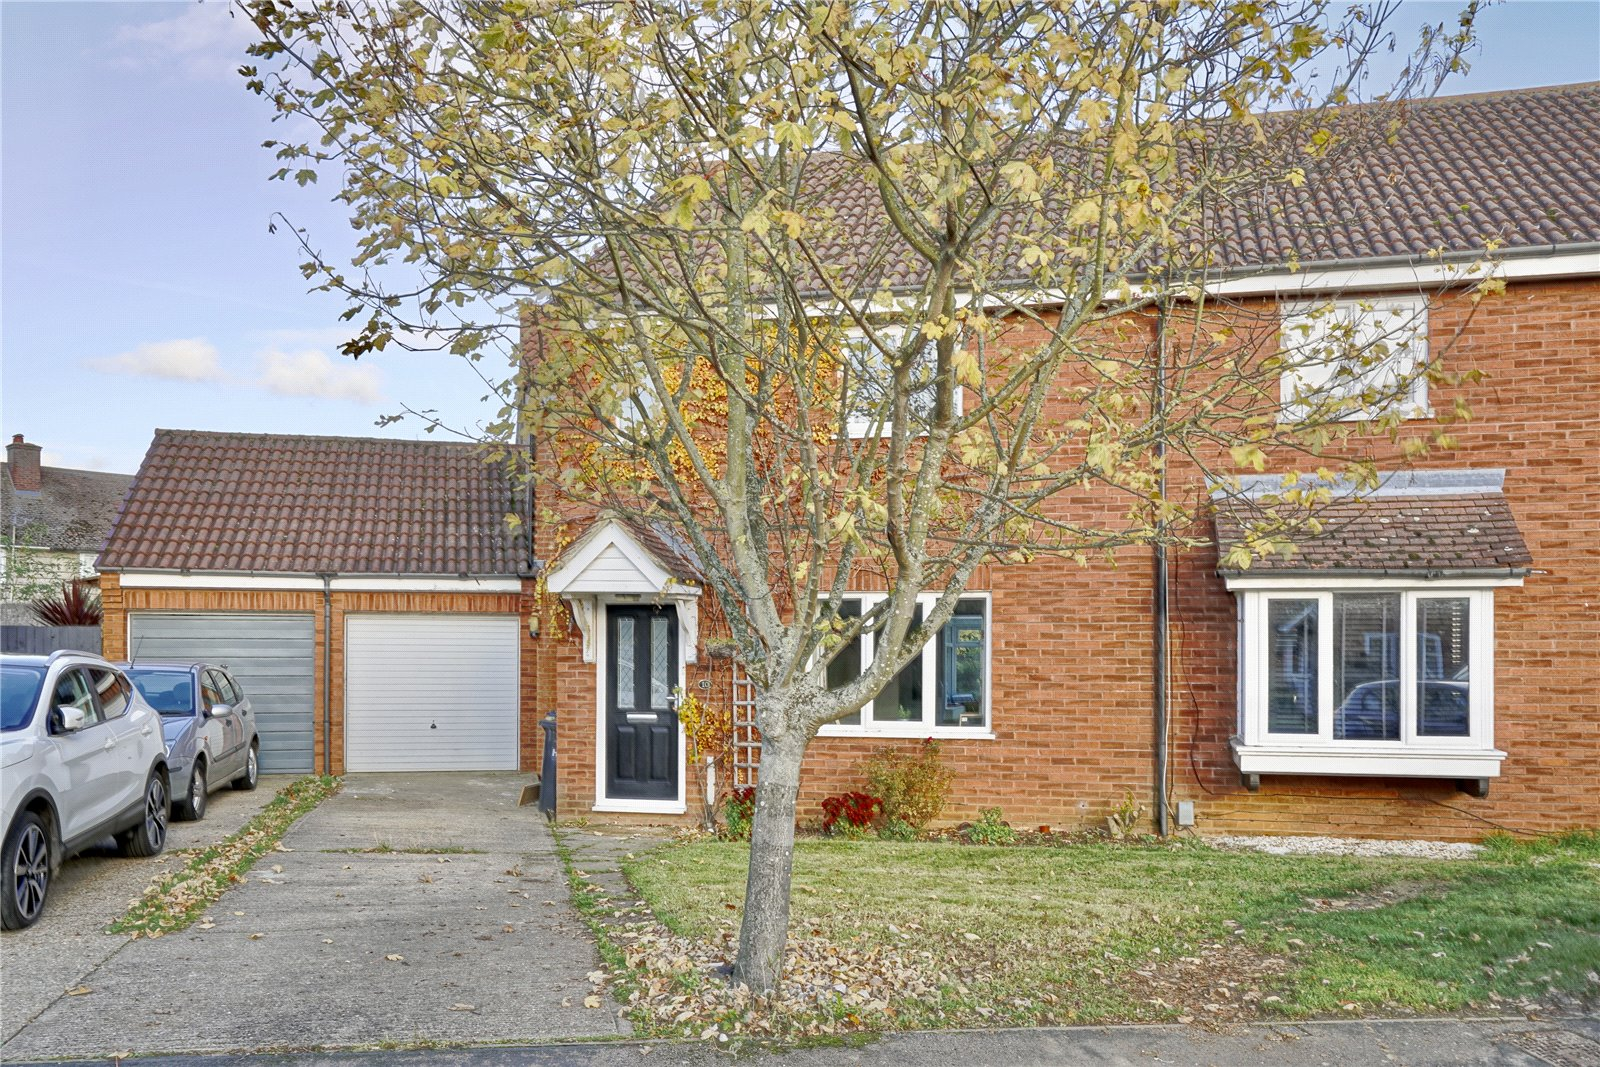 4 bed house for sale in Codrington Court, Eaton Socon  - Property Image 7